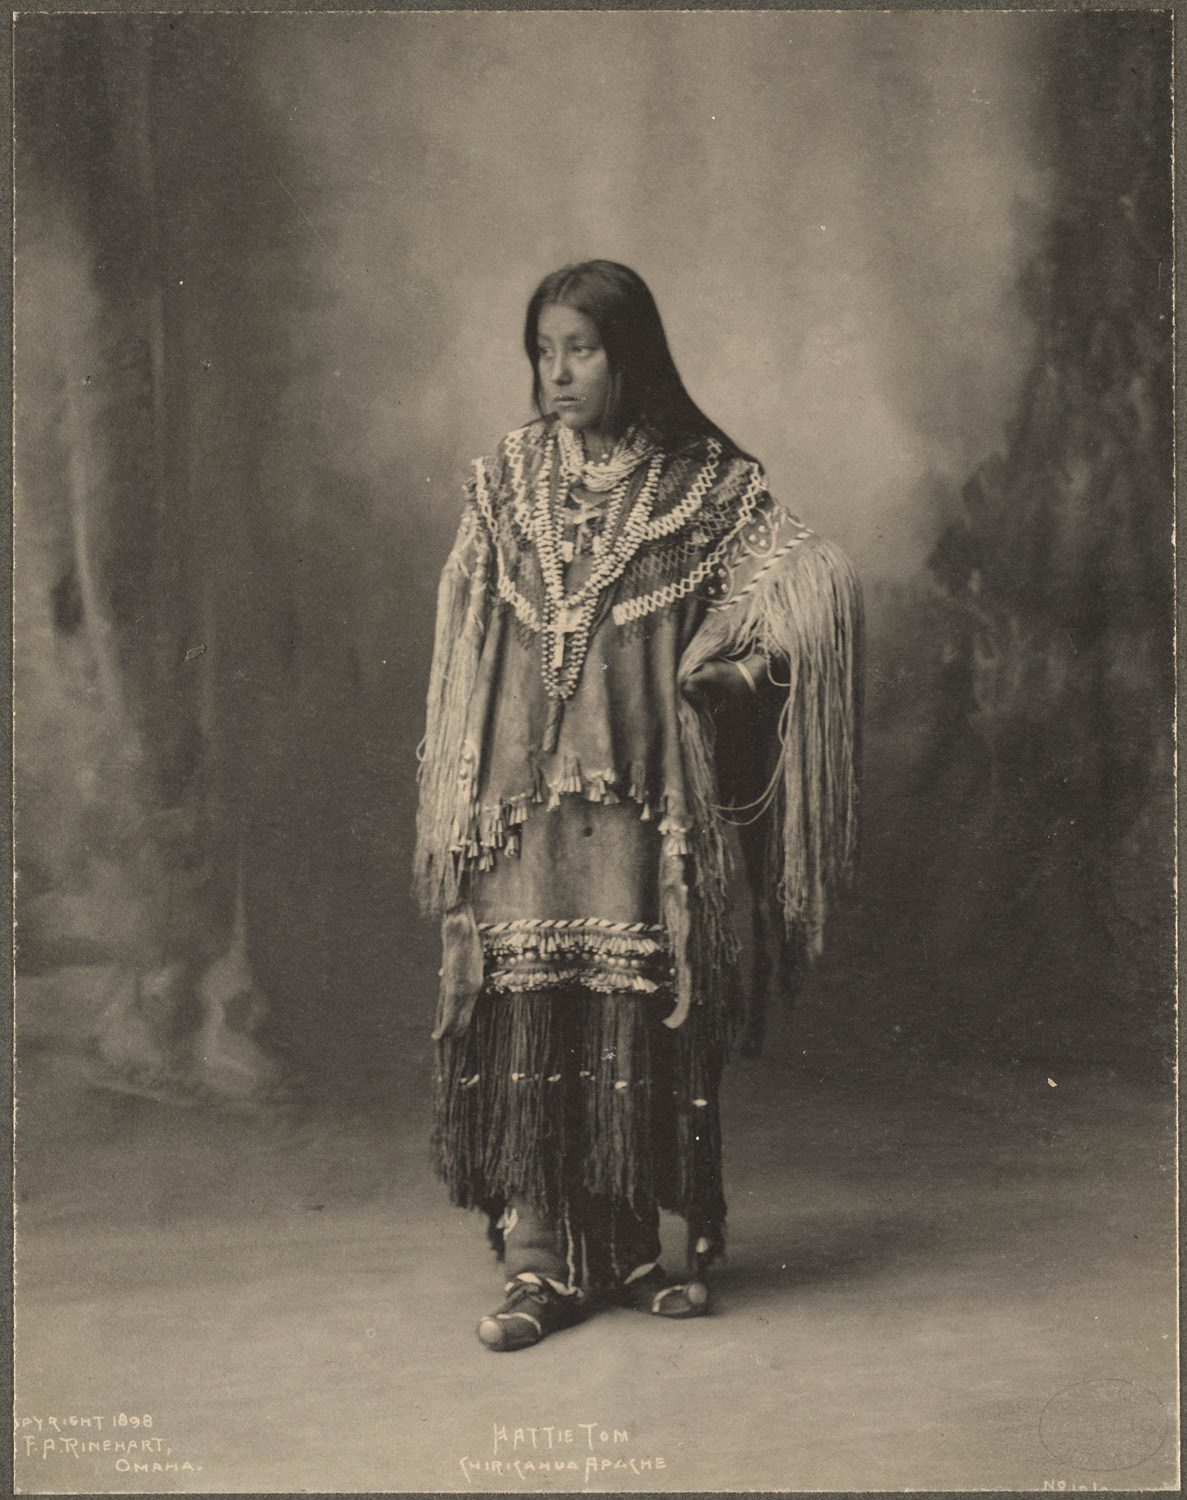 Hattie Tom, Chiricahua Apache, 1899. (Photo by Frank A. Rinehart)